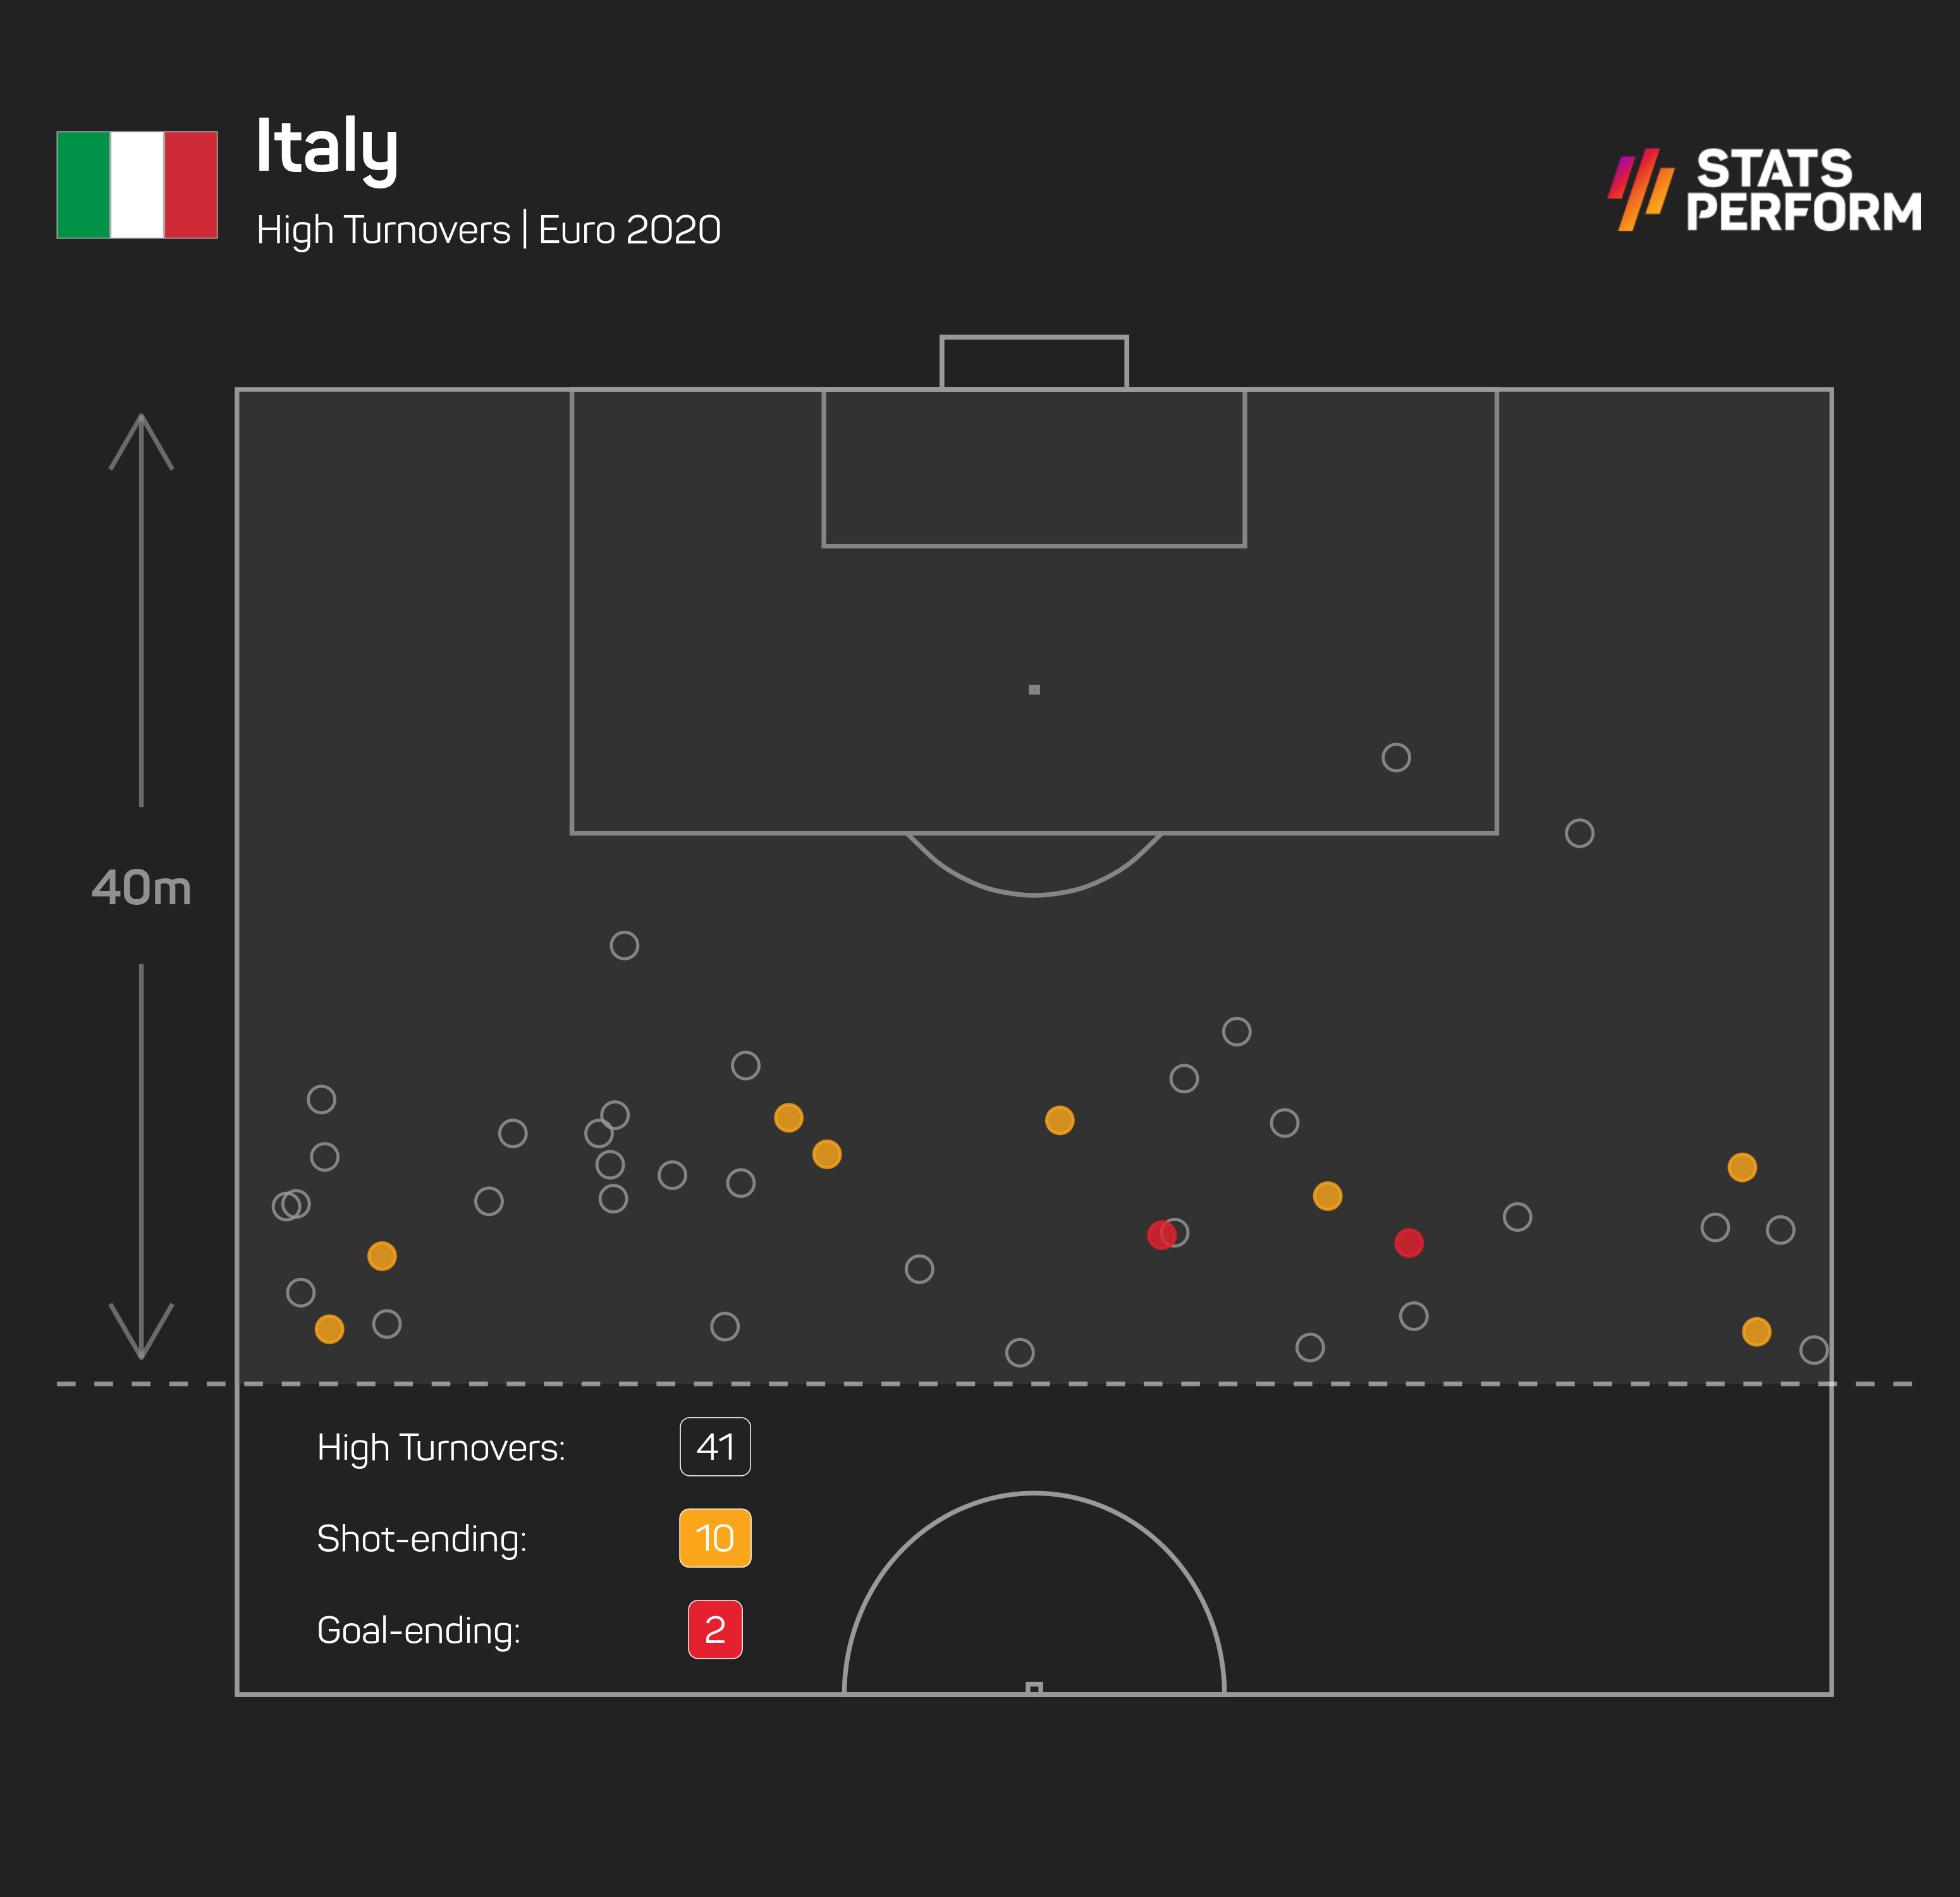 Italy have been effective with high turnovers